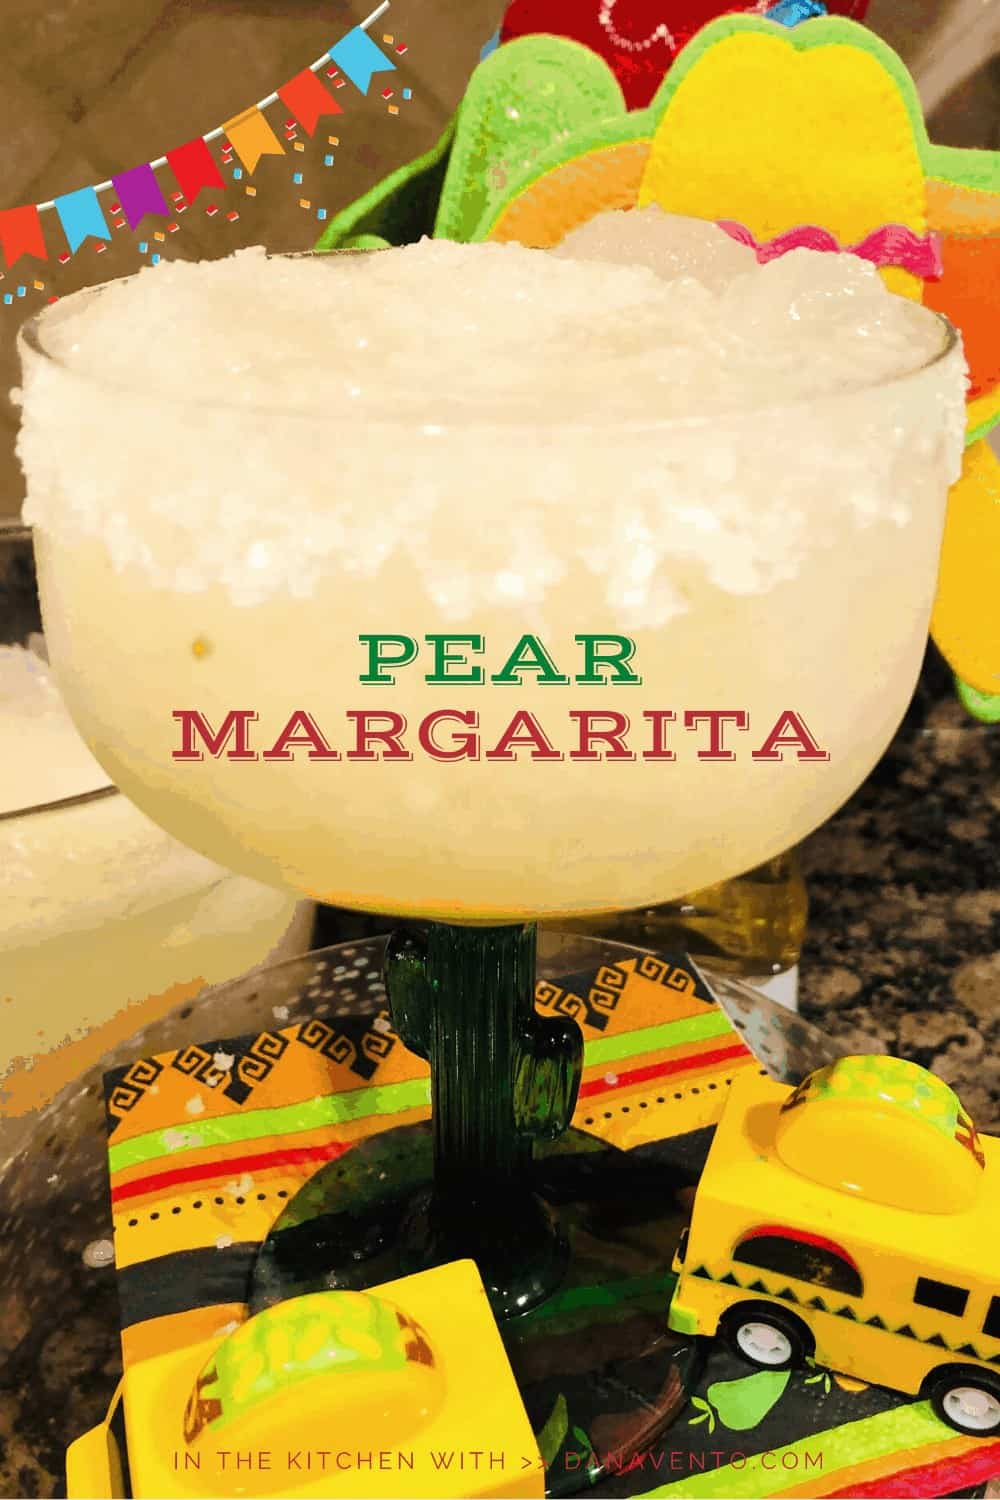 Perfectly Imperfect Pear Margaritas For Every Party